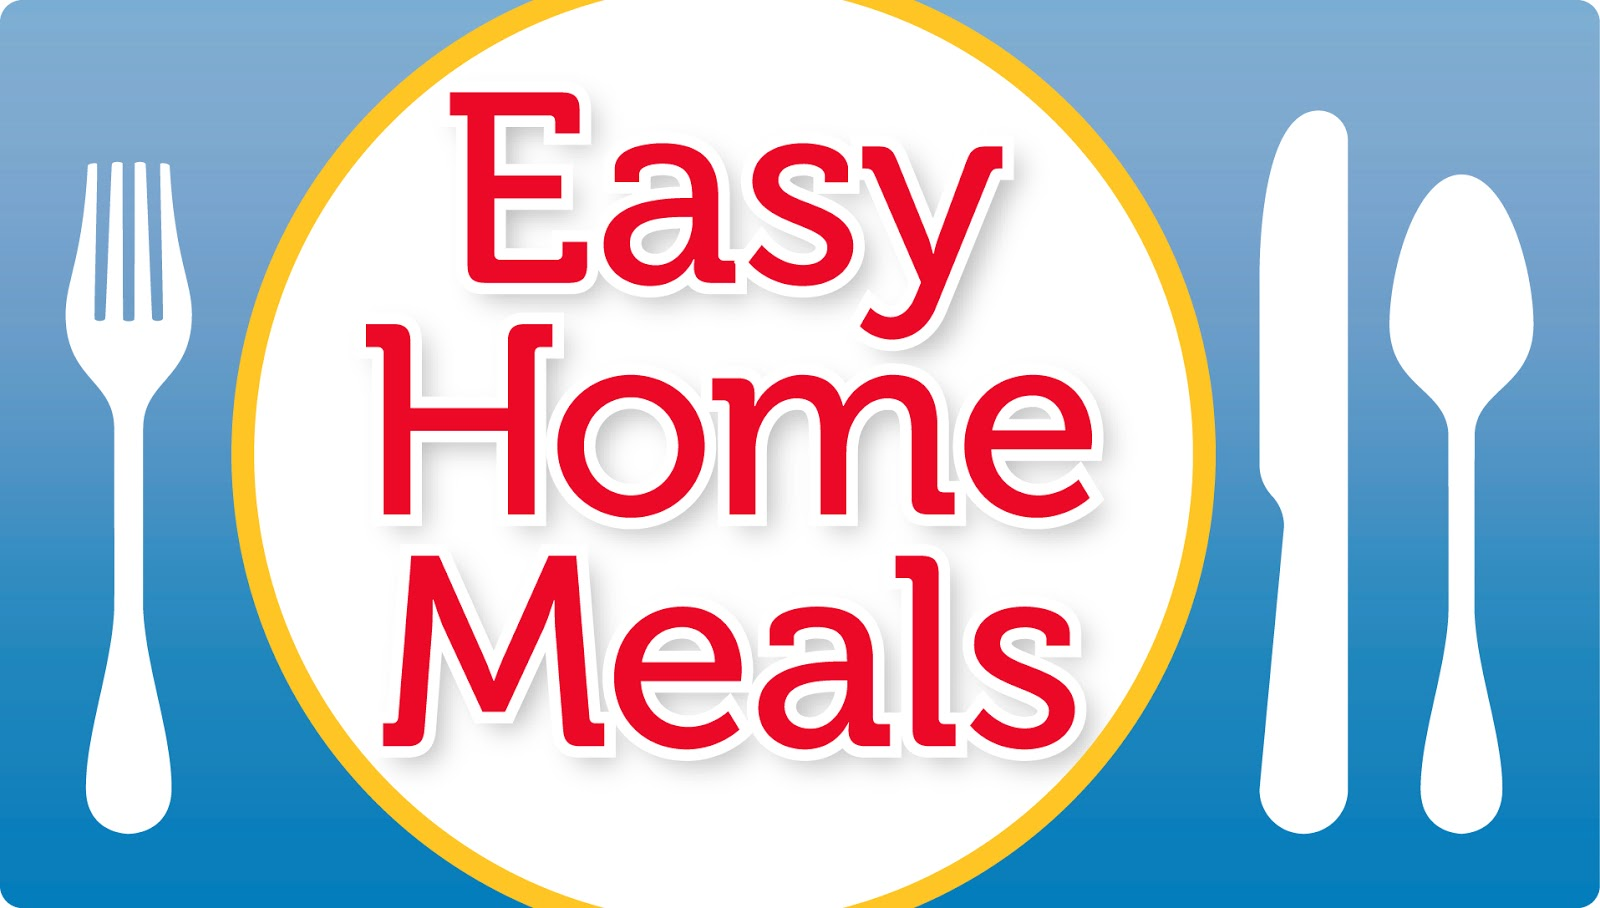 Easy Home Meals #FrozenChefMadness